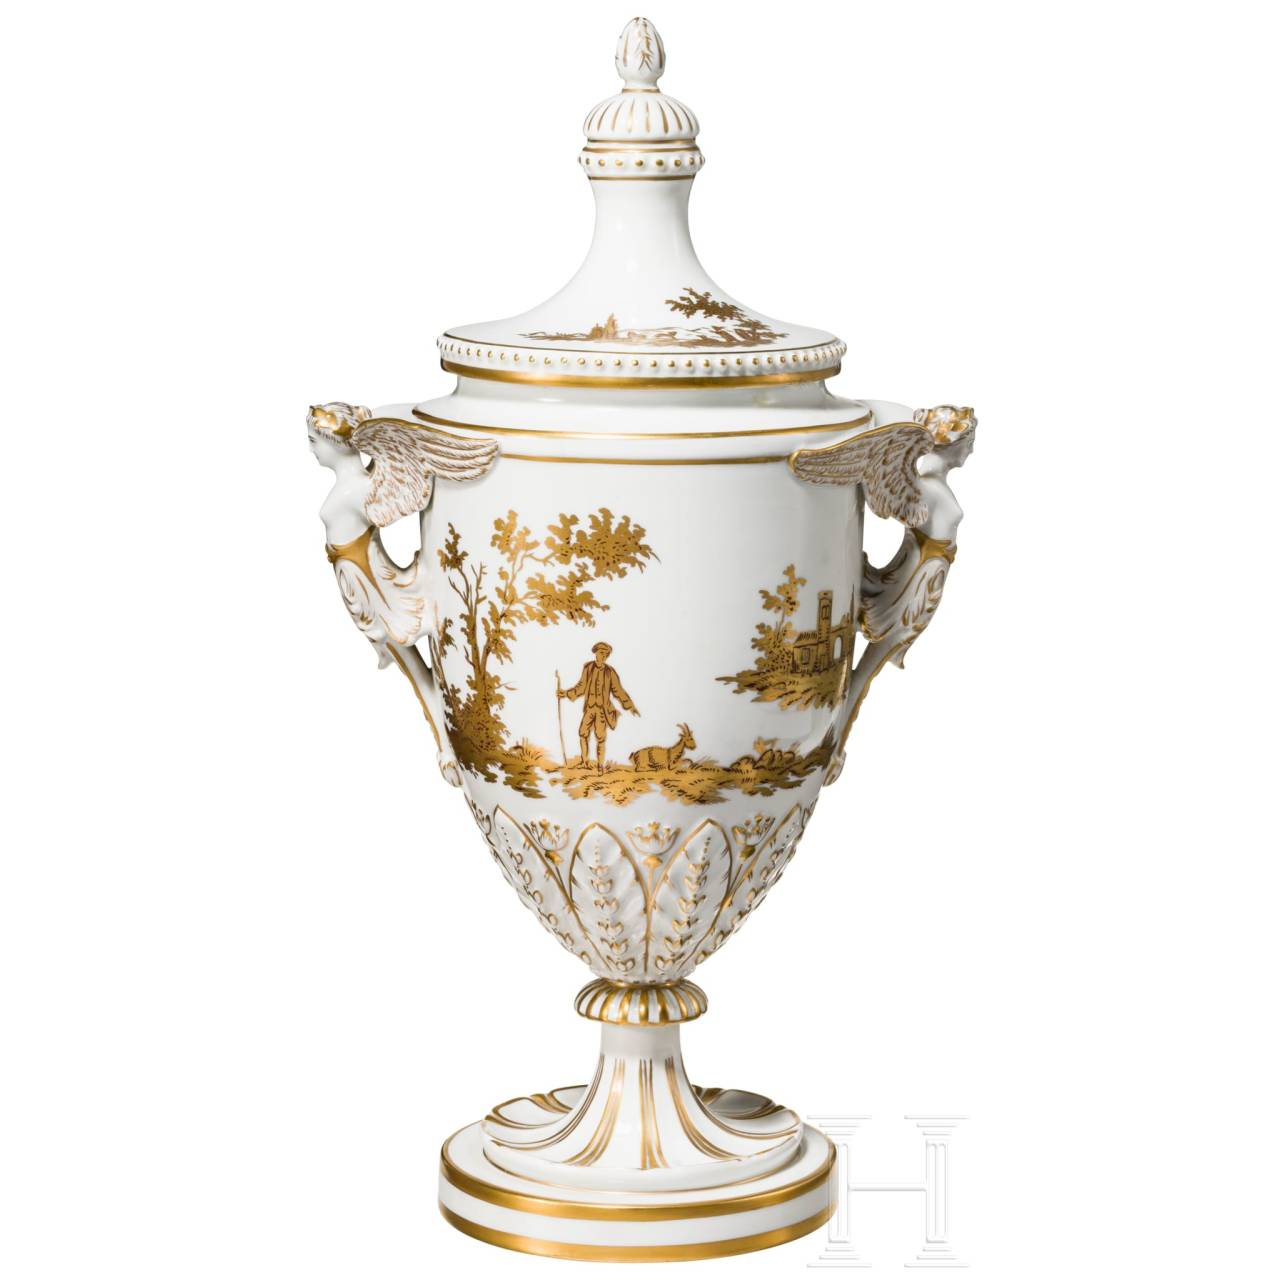 A presentation vase from the porcelain manufacture Dresden, 20th century